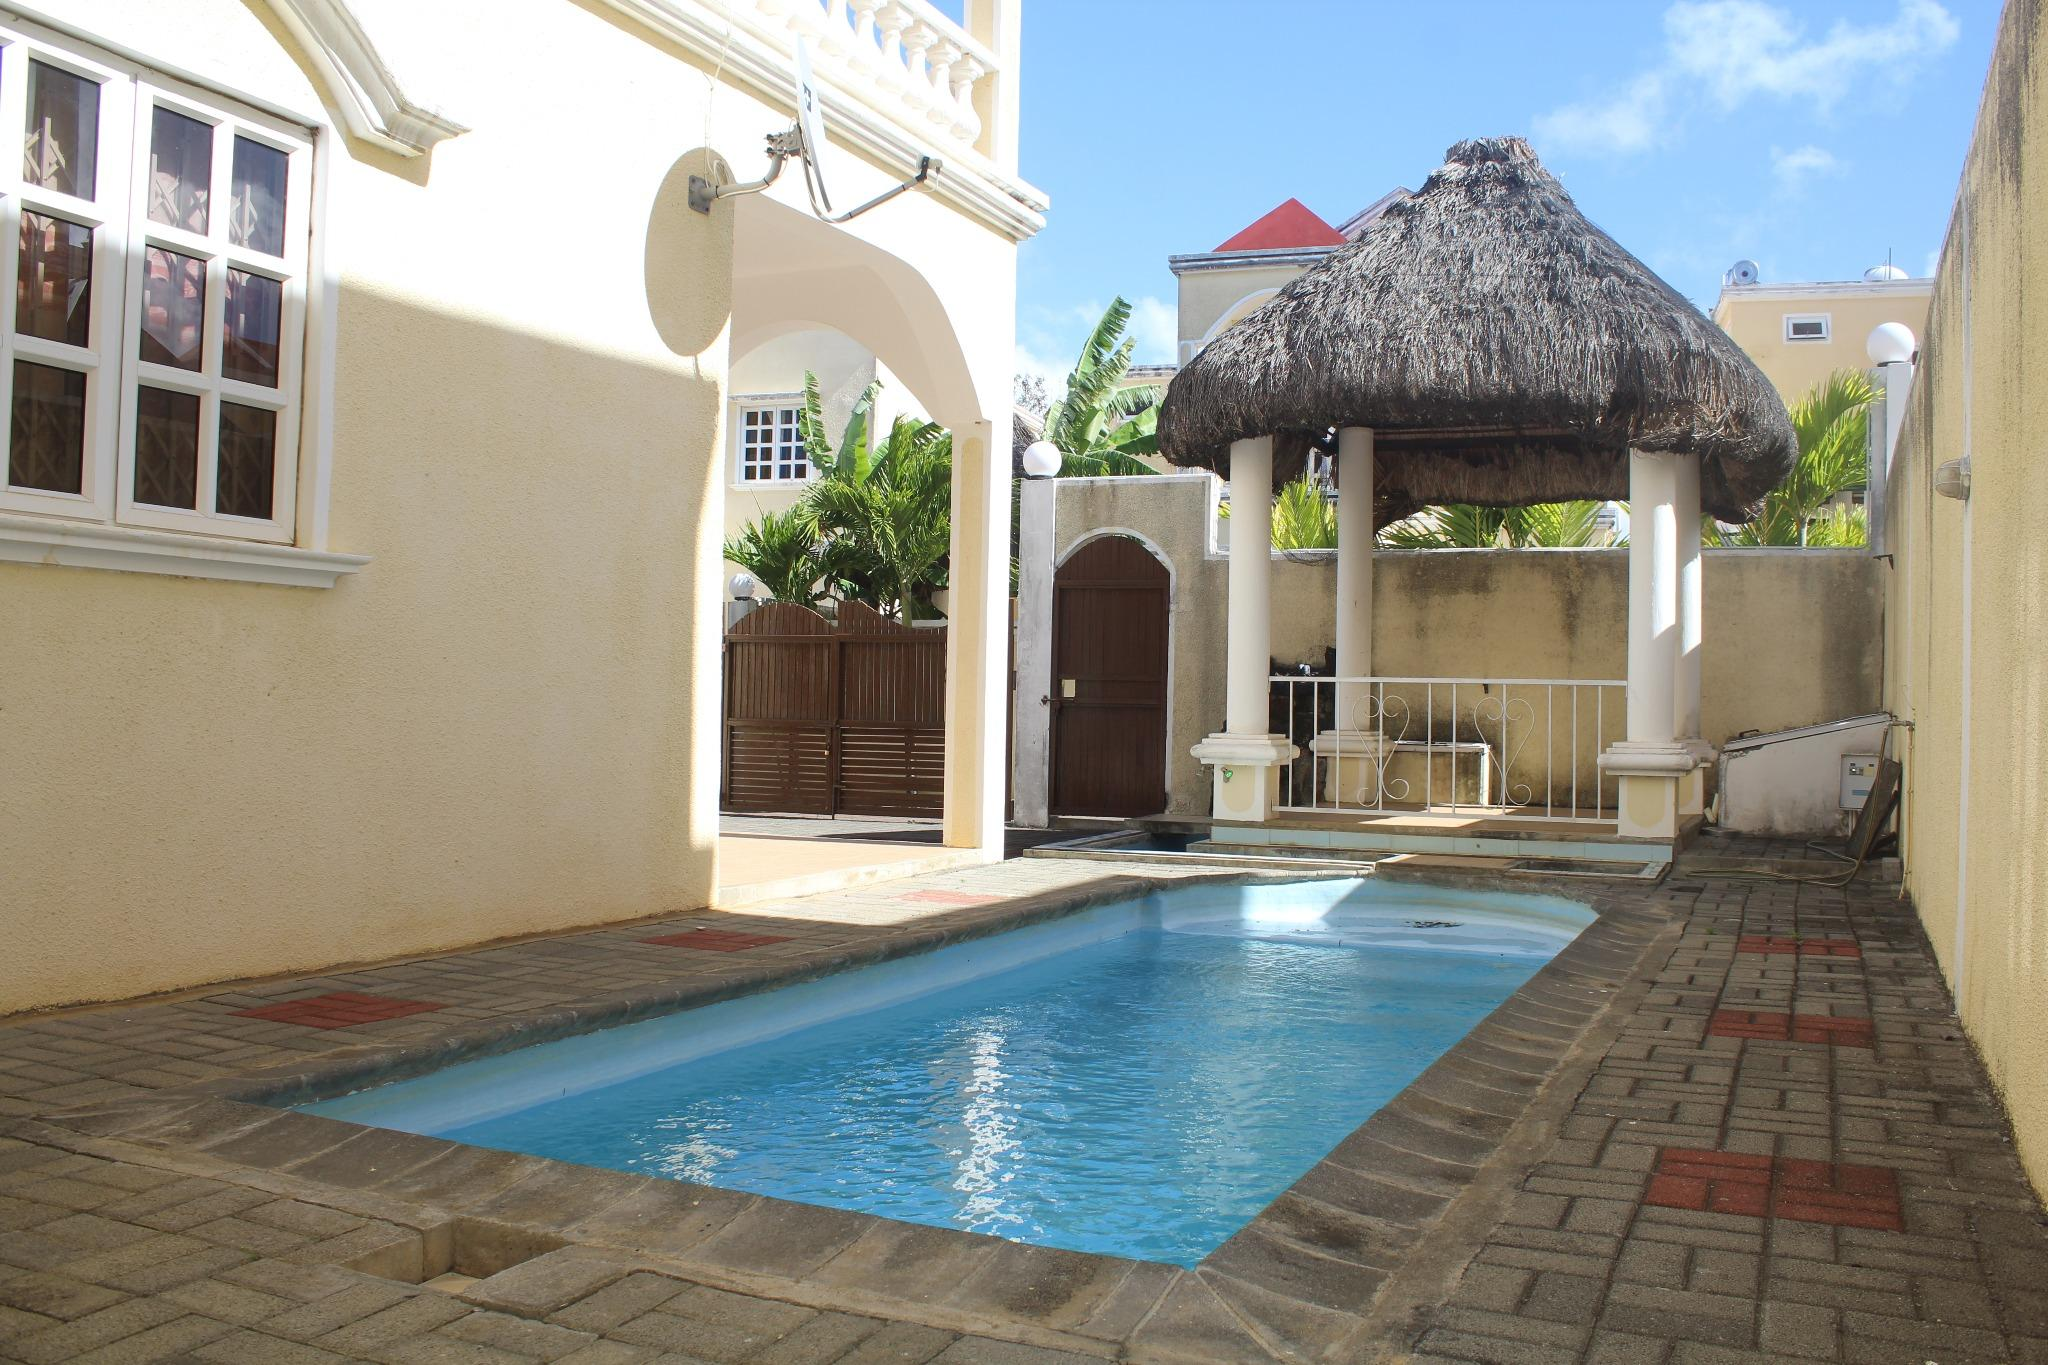 To rent – Charming furnished and equipped townhouse of 175 m2 in Grand Bay.